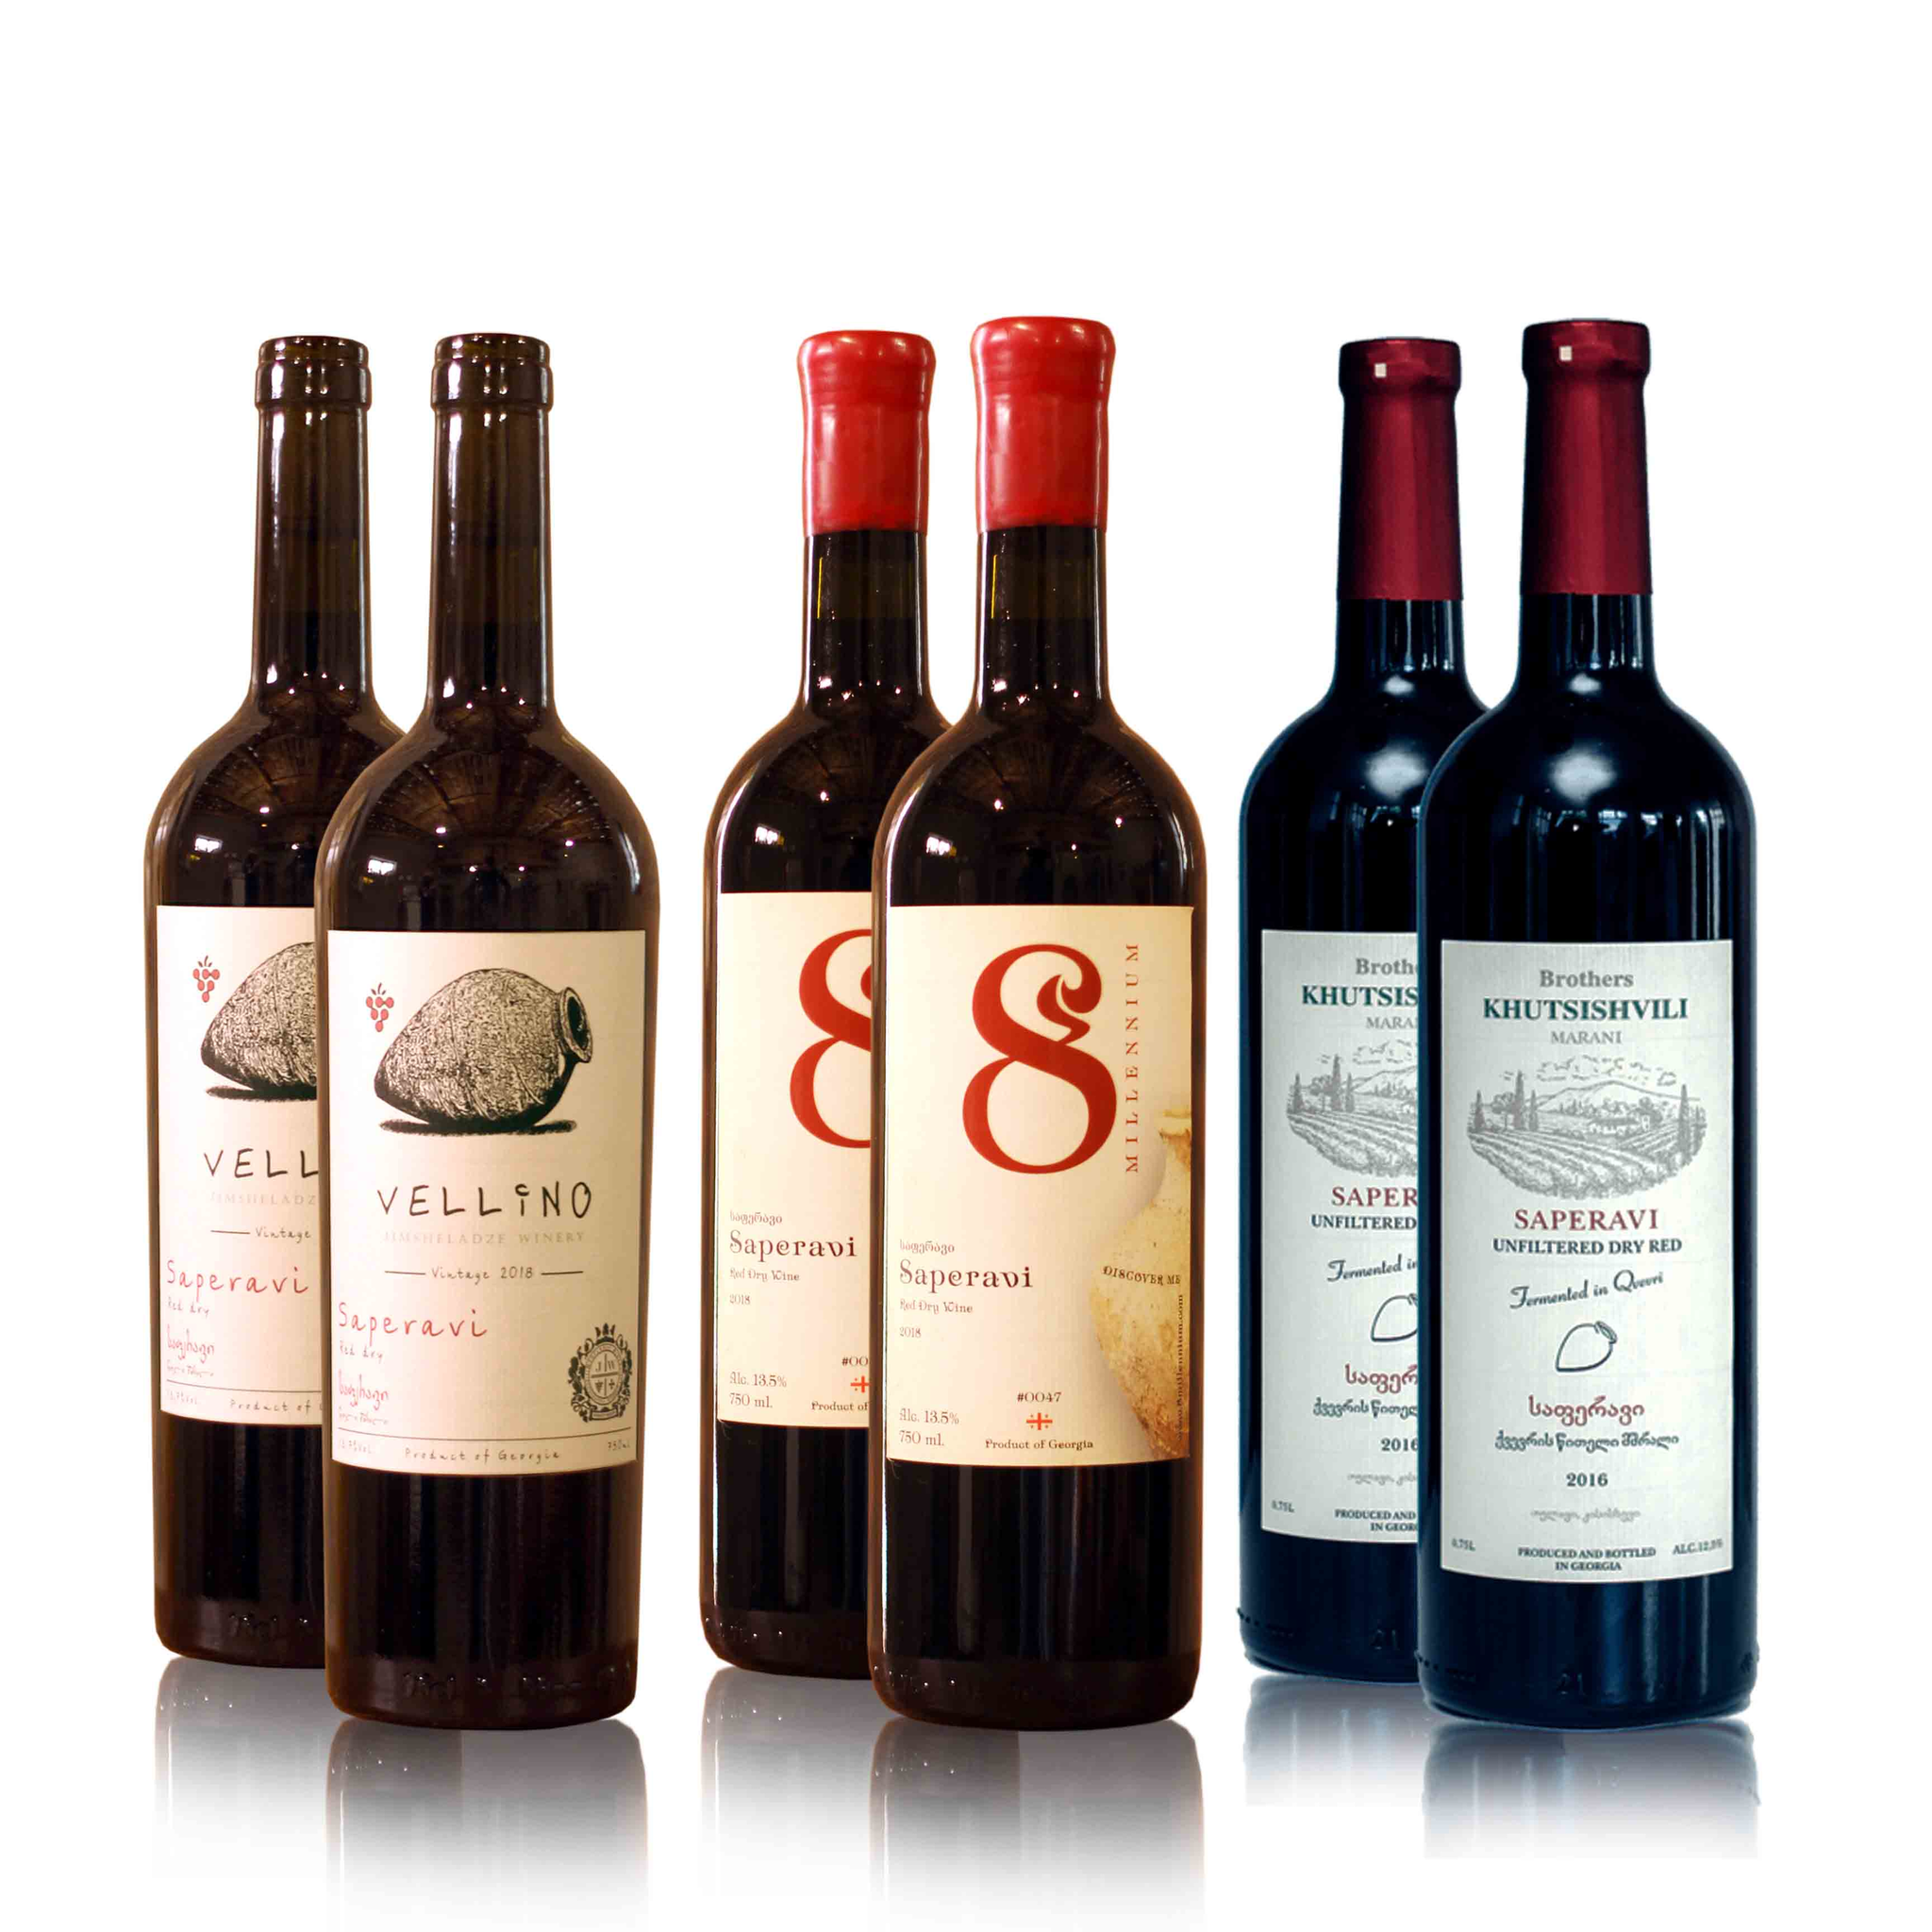 8millennium and Vellino Red wine tasting package